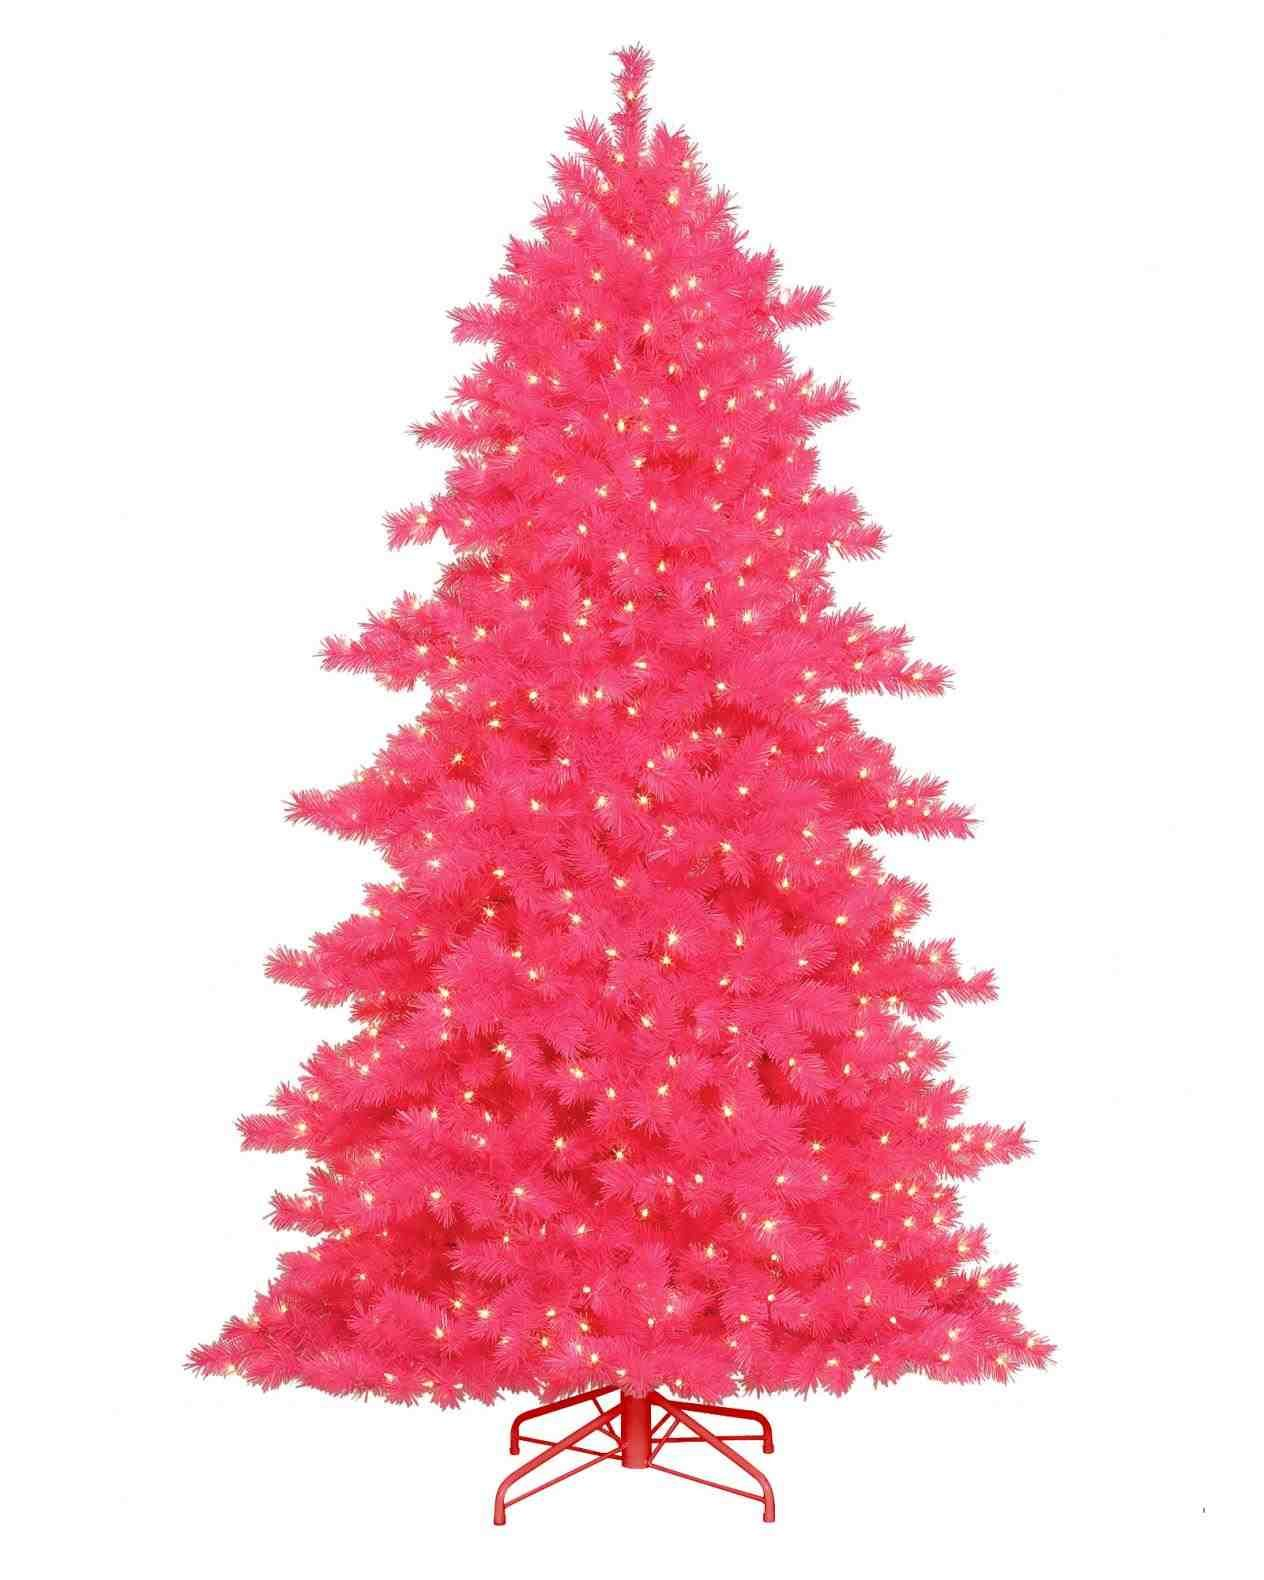 Christmas Tree New Post Hot Pink